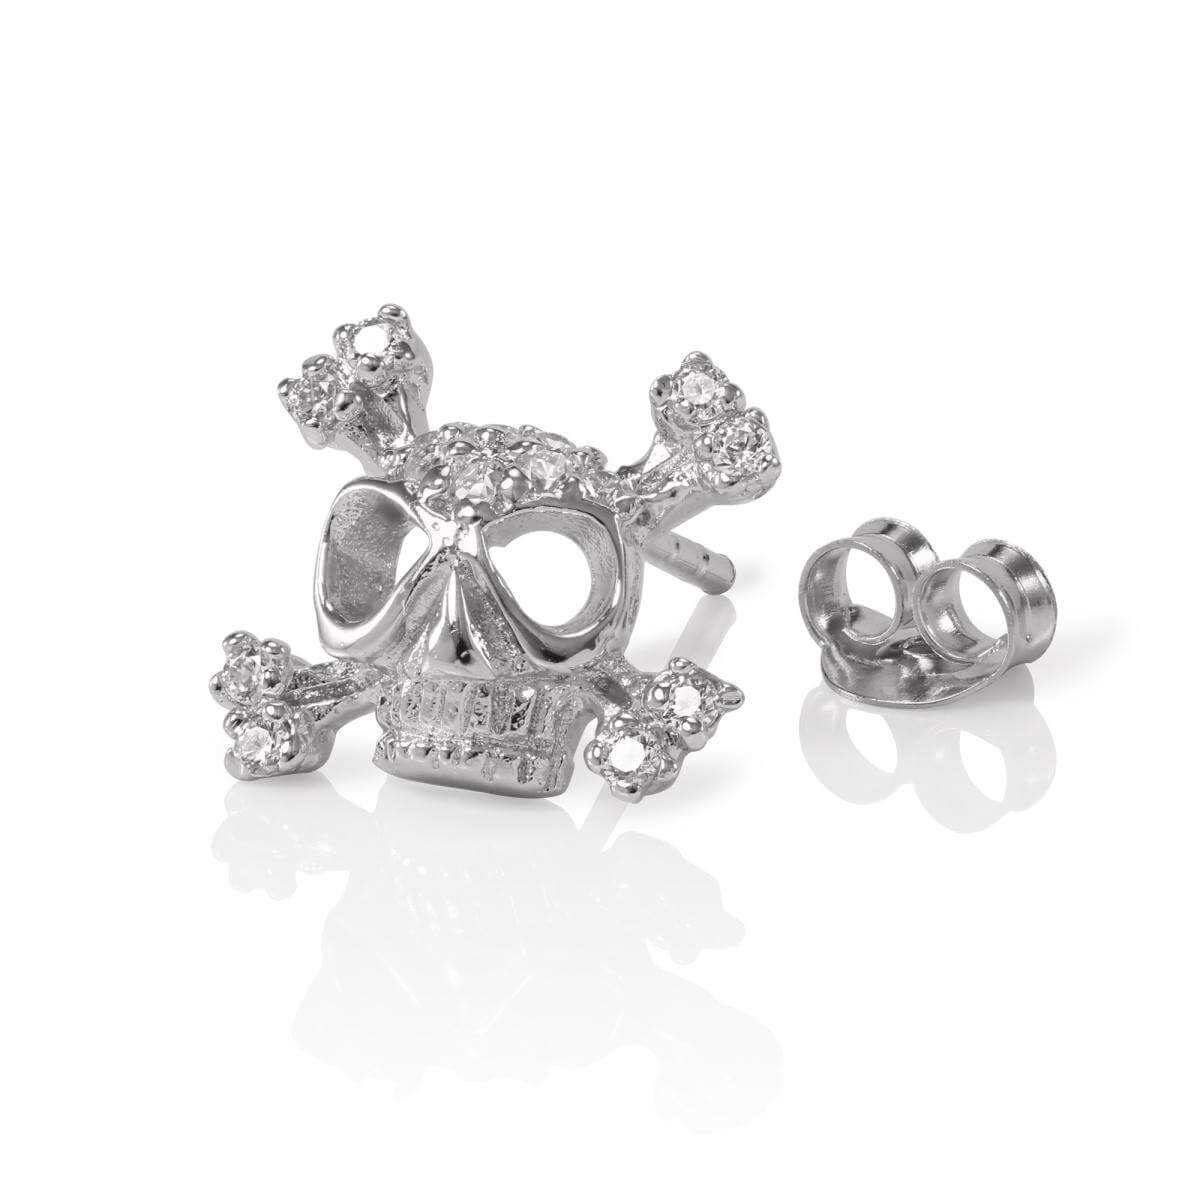 Sterling Silver Mens CZ Crystal Encrusted Single Skull Ear Stud Earring